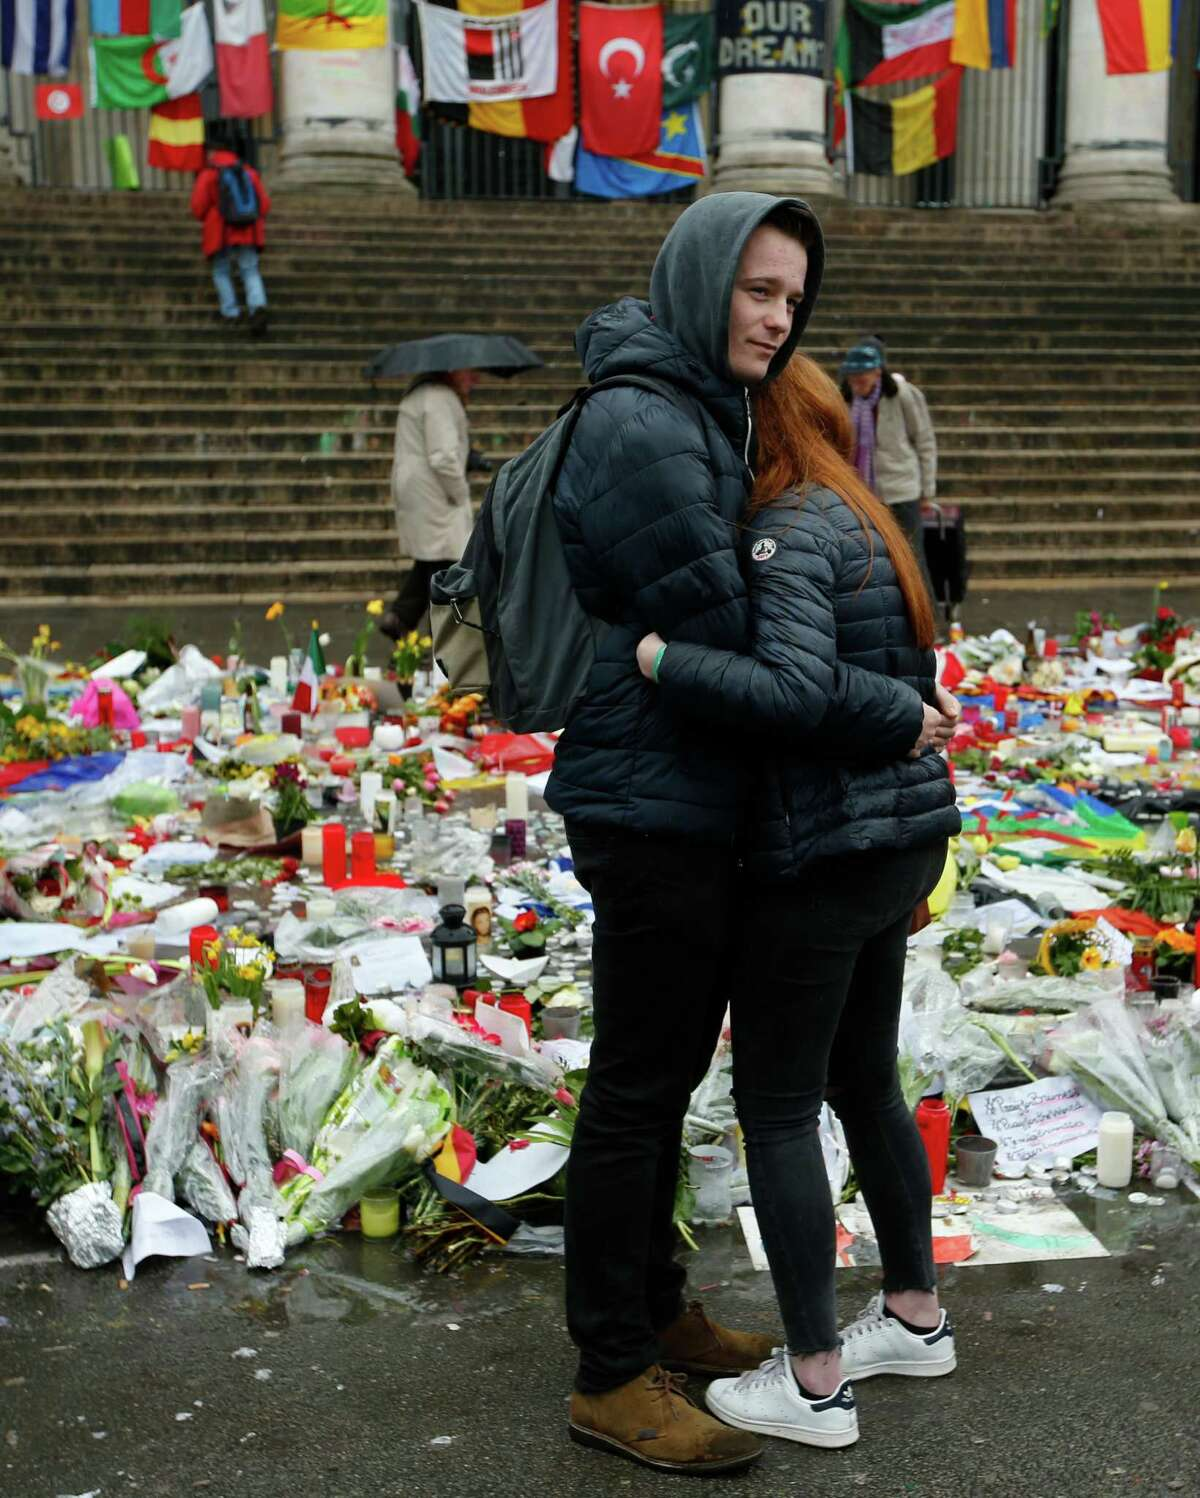 A couple embrace in front of tributes placed in a memorial for victims of the recent attacks on Brussels at the Place de la Bourse in Brussels, Friday, March, 25, 2016. Amid signs that life in Brussels was returning to some sort of normality on the third day of mourning the dead, authorities lowered Belgium's terror-threat level by one notch. However, they said the situation remained grave and another attack is